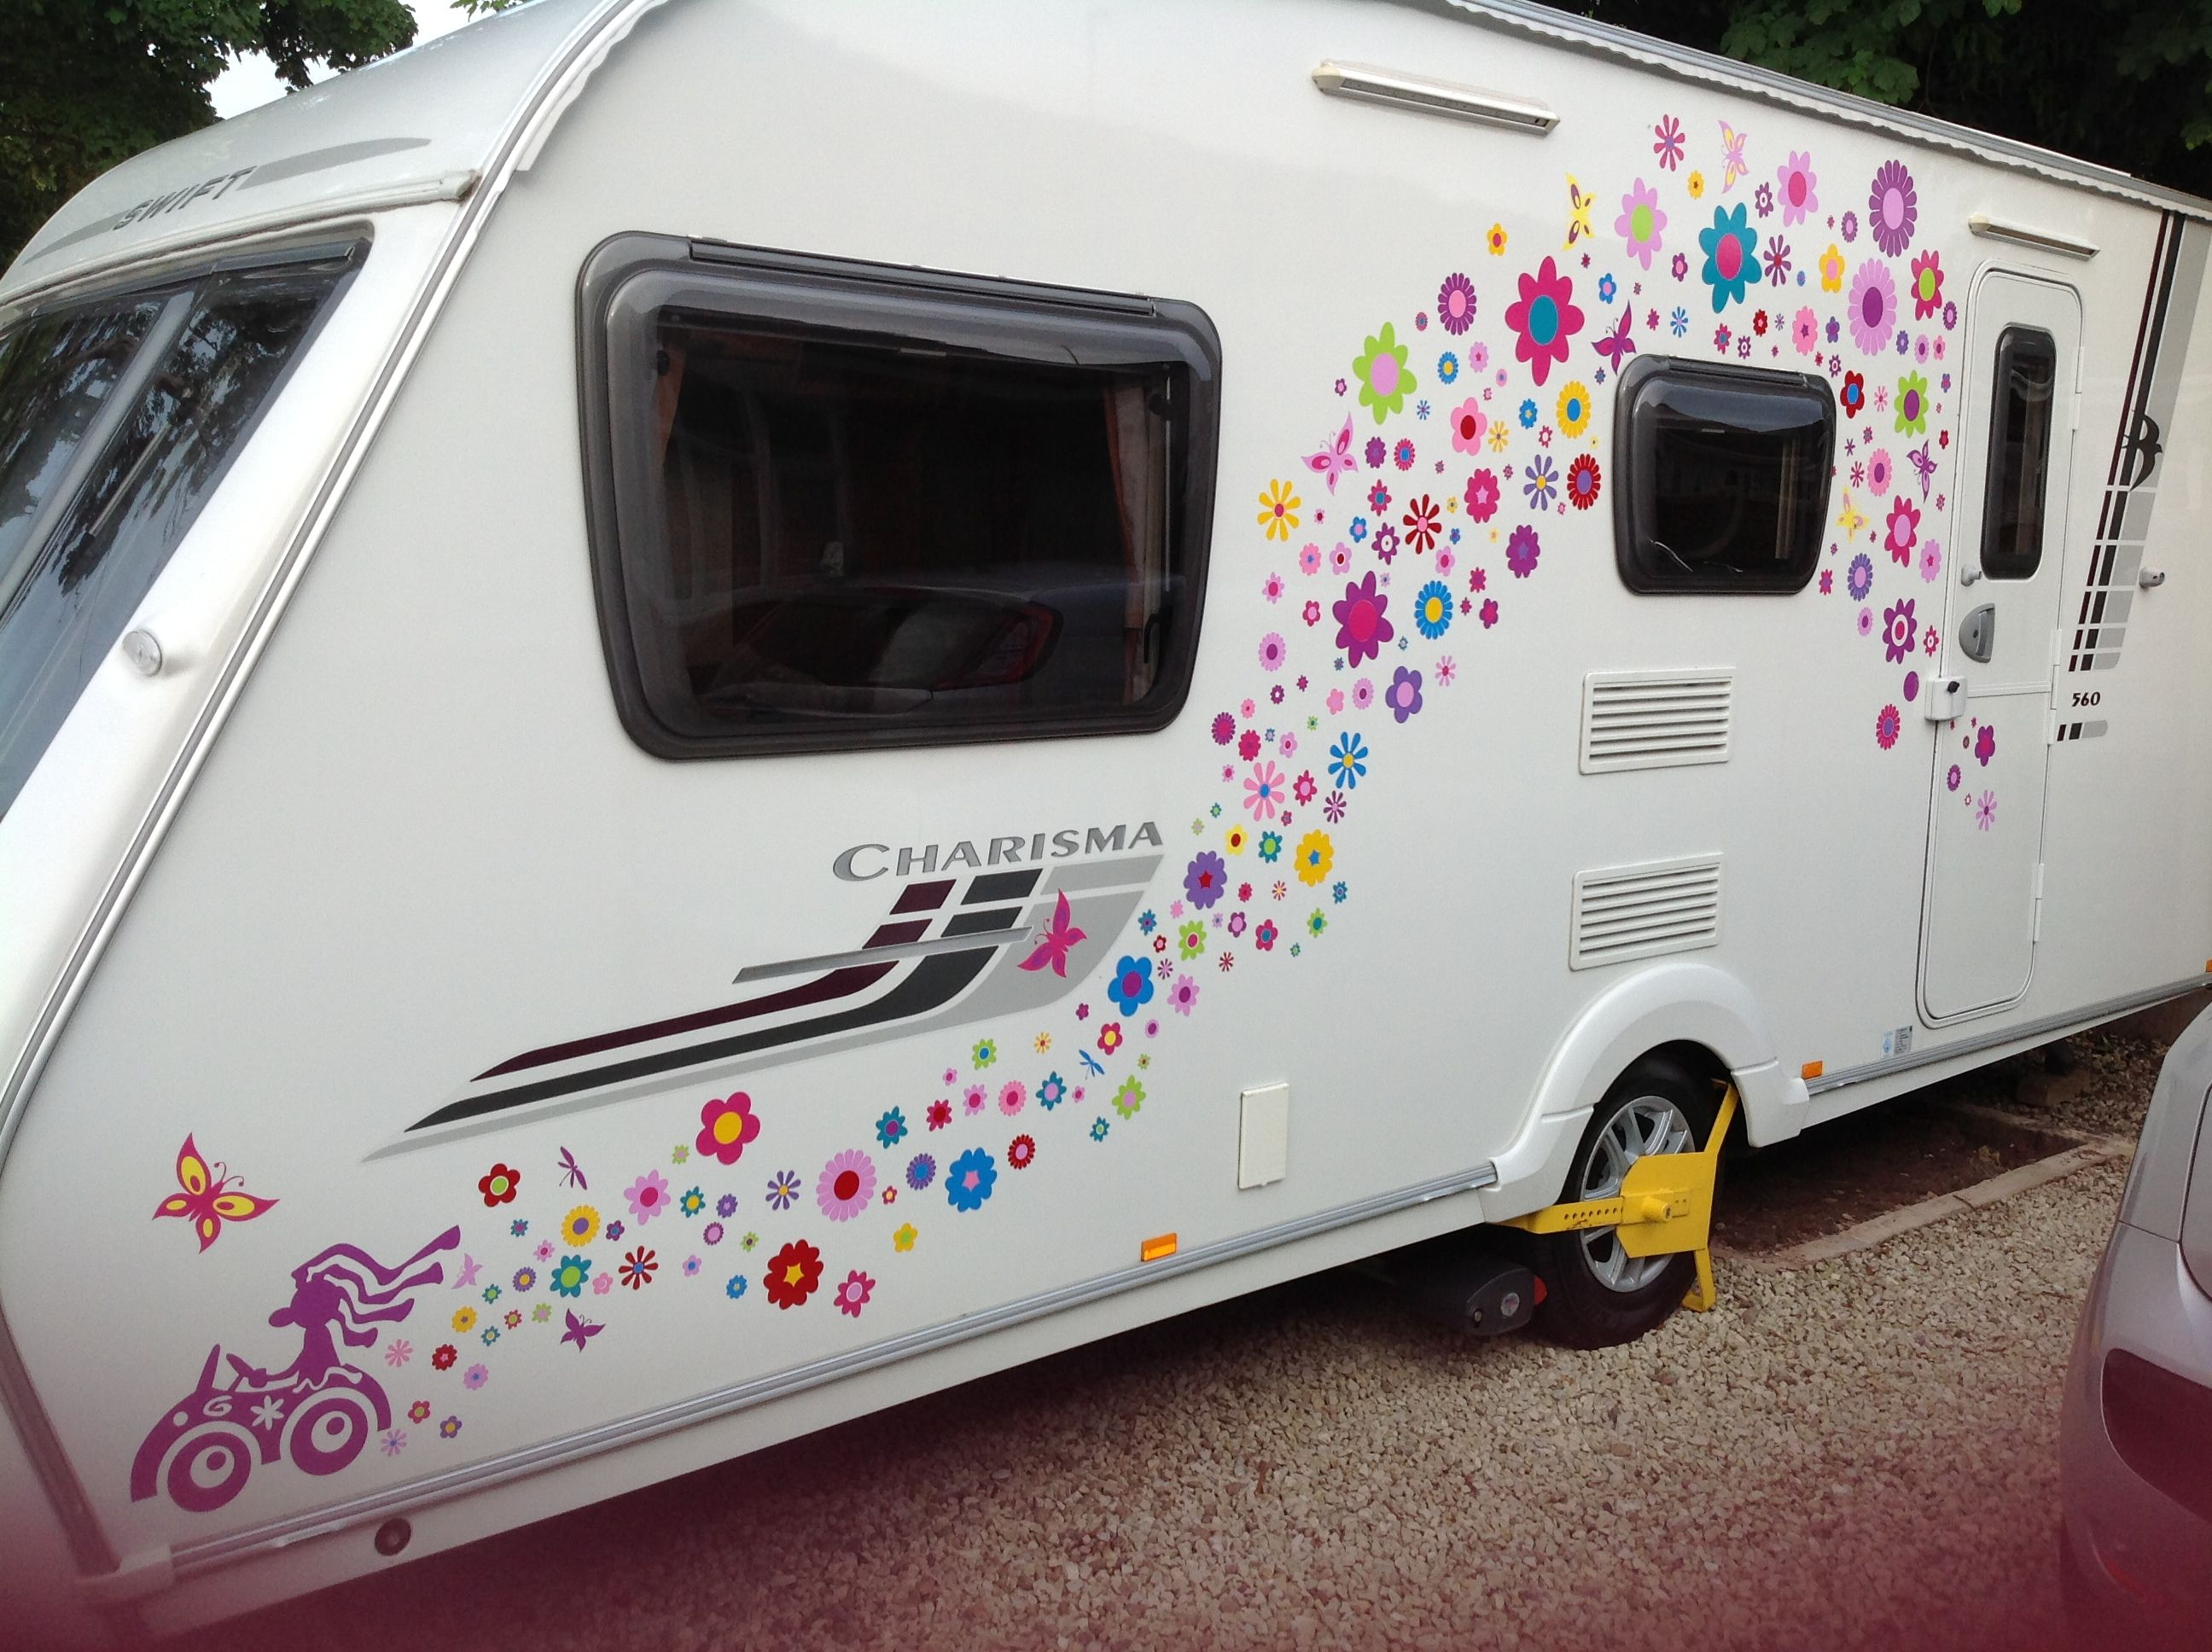 Best Uniquely Designed Hippy Car Stickers Decals Transfers For - Custom vinyl decals for caravans